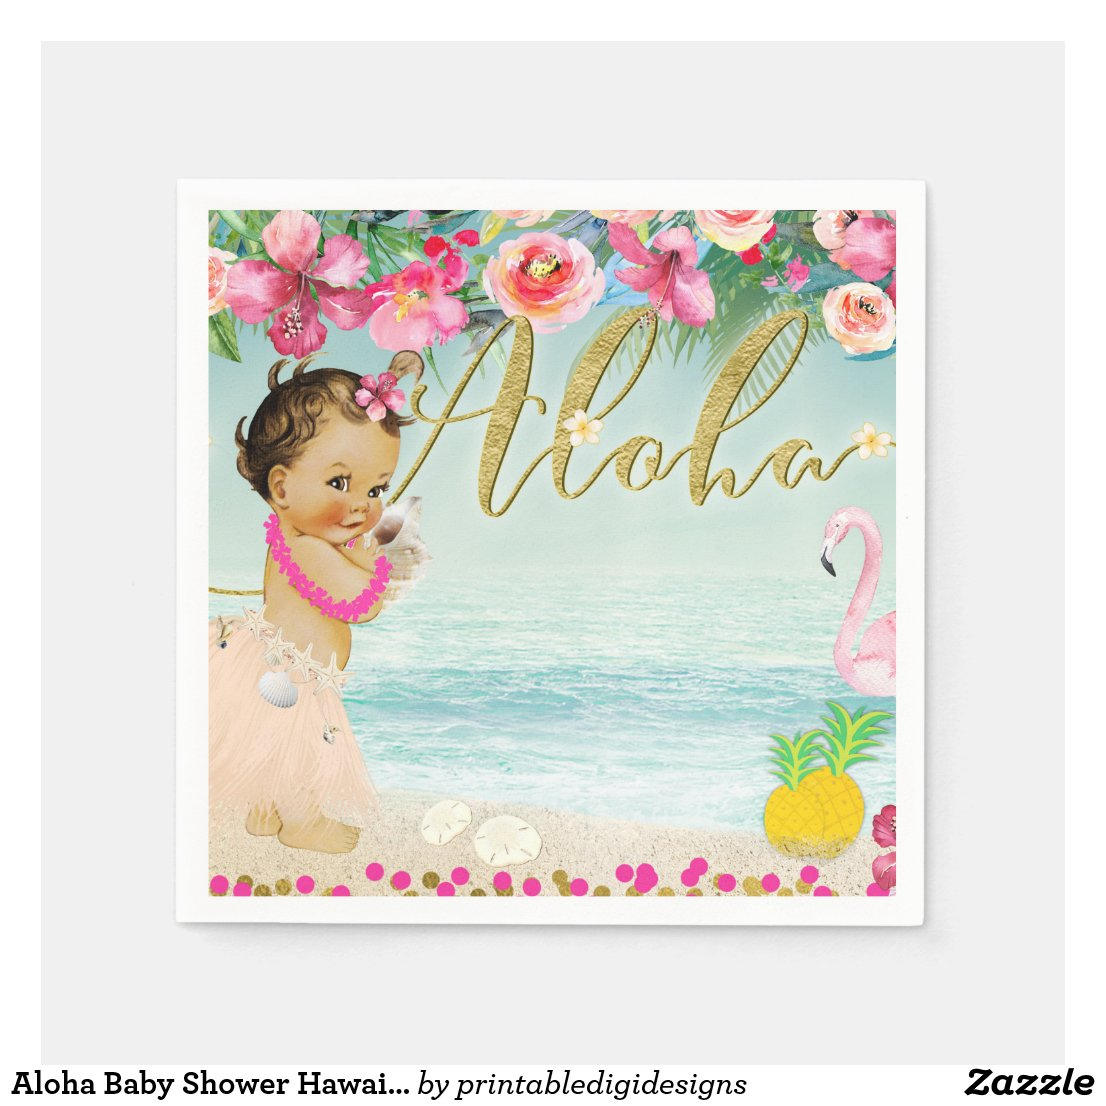 Aloha Baby Shower Hawaiian Beach Retro Party